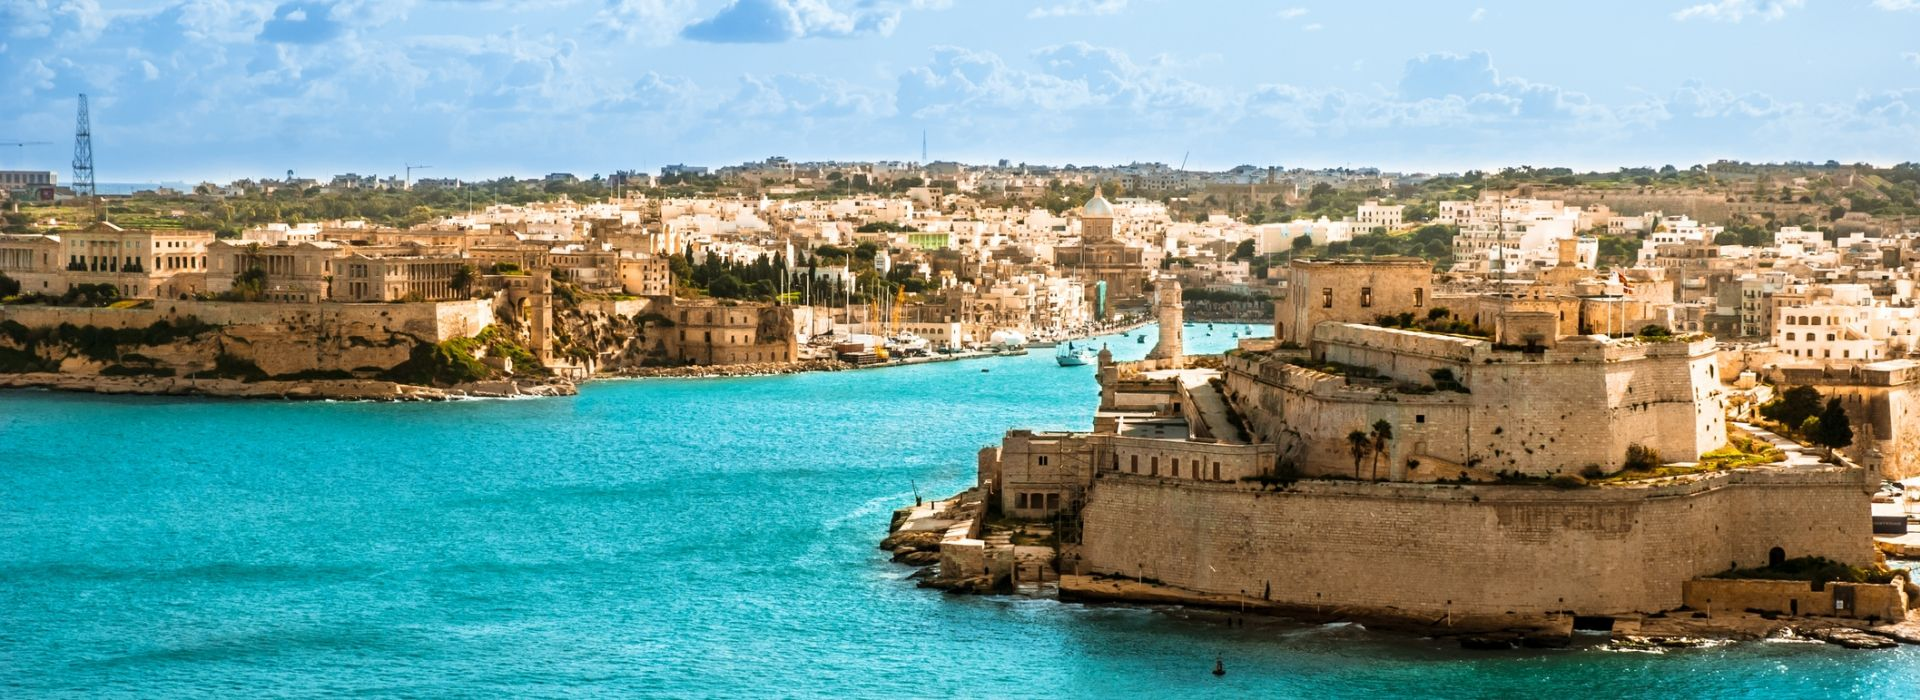 Travelling Malta – Tours and Holiday Packages in Malta